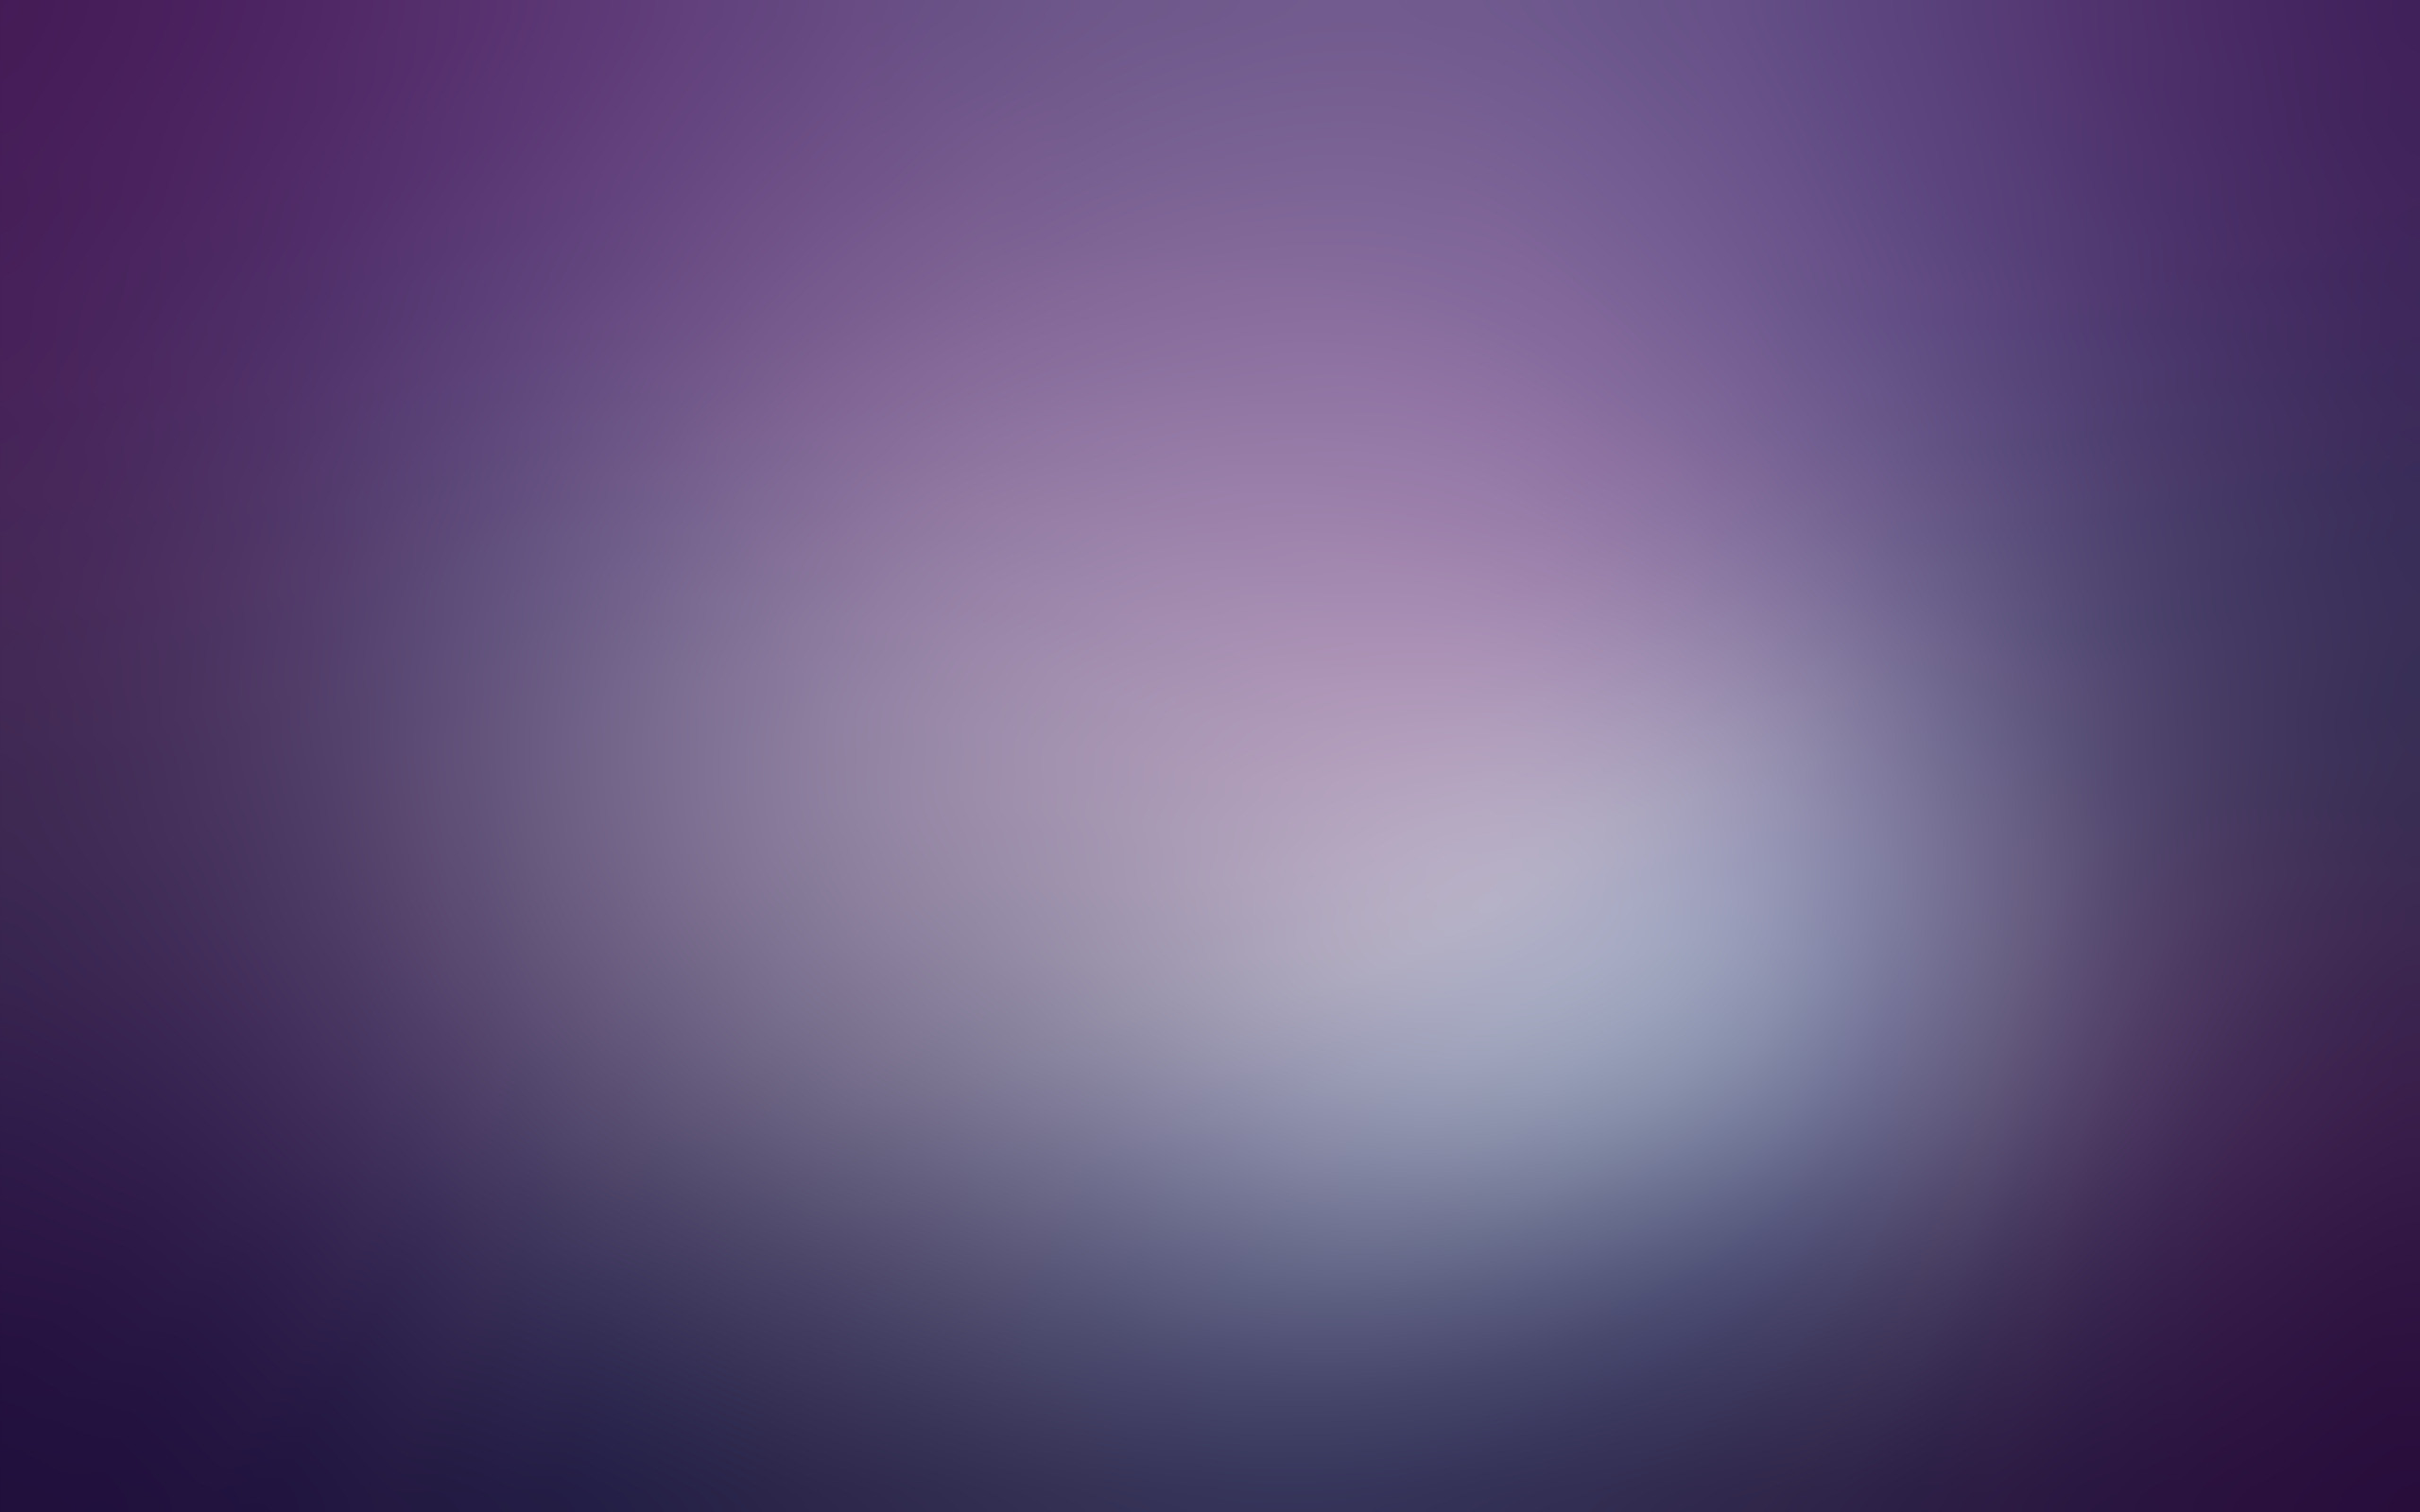 Plain Lavender Wallpaper Hd: Wallpapers for Gt Light Purple Gradient  Background 2560x1600px